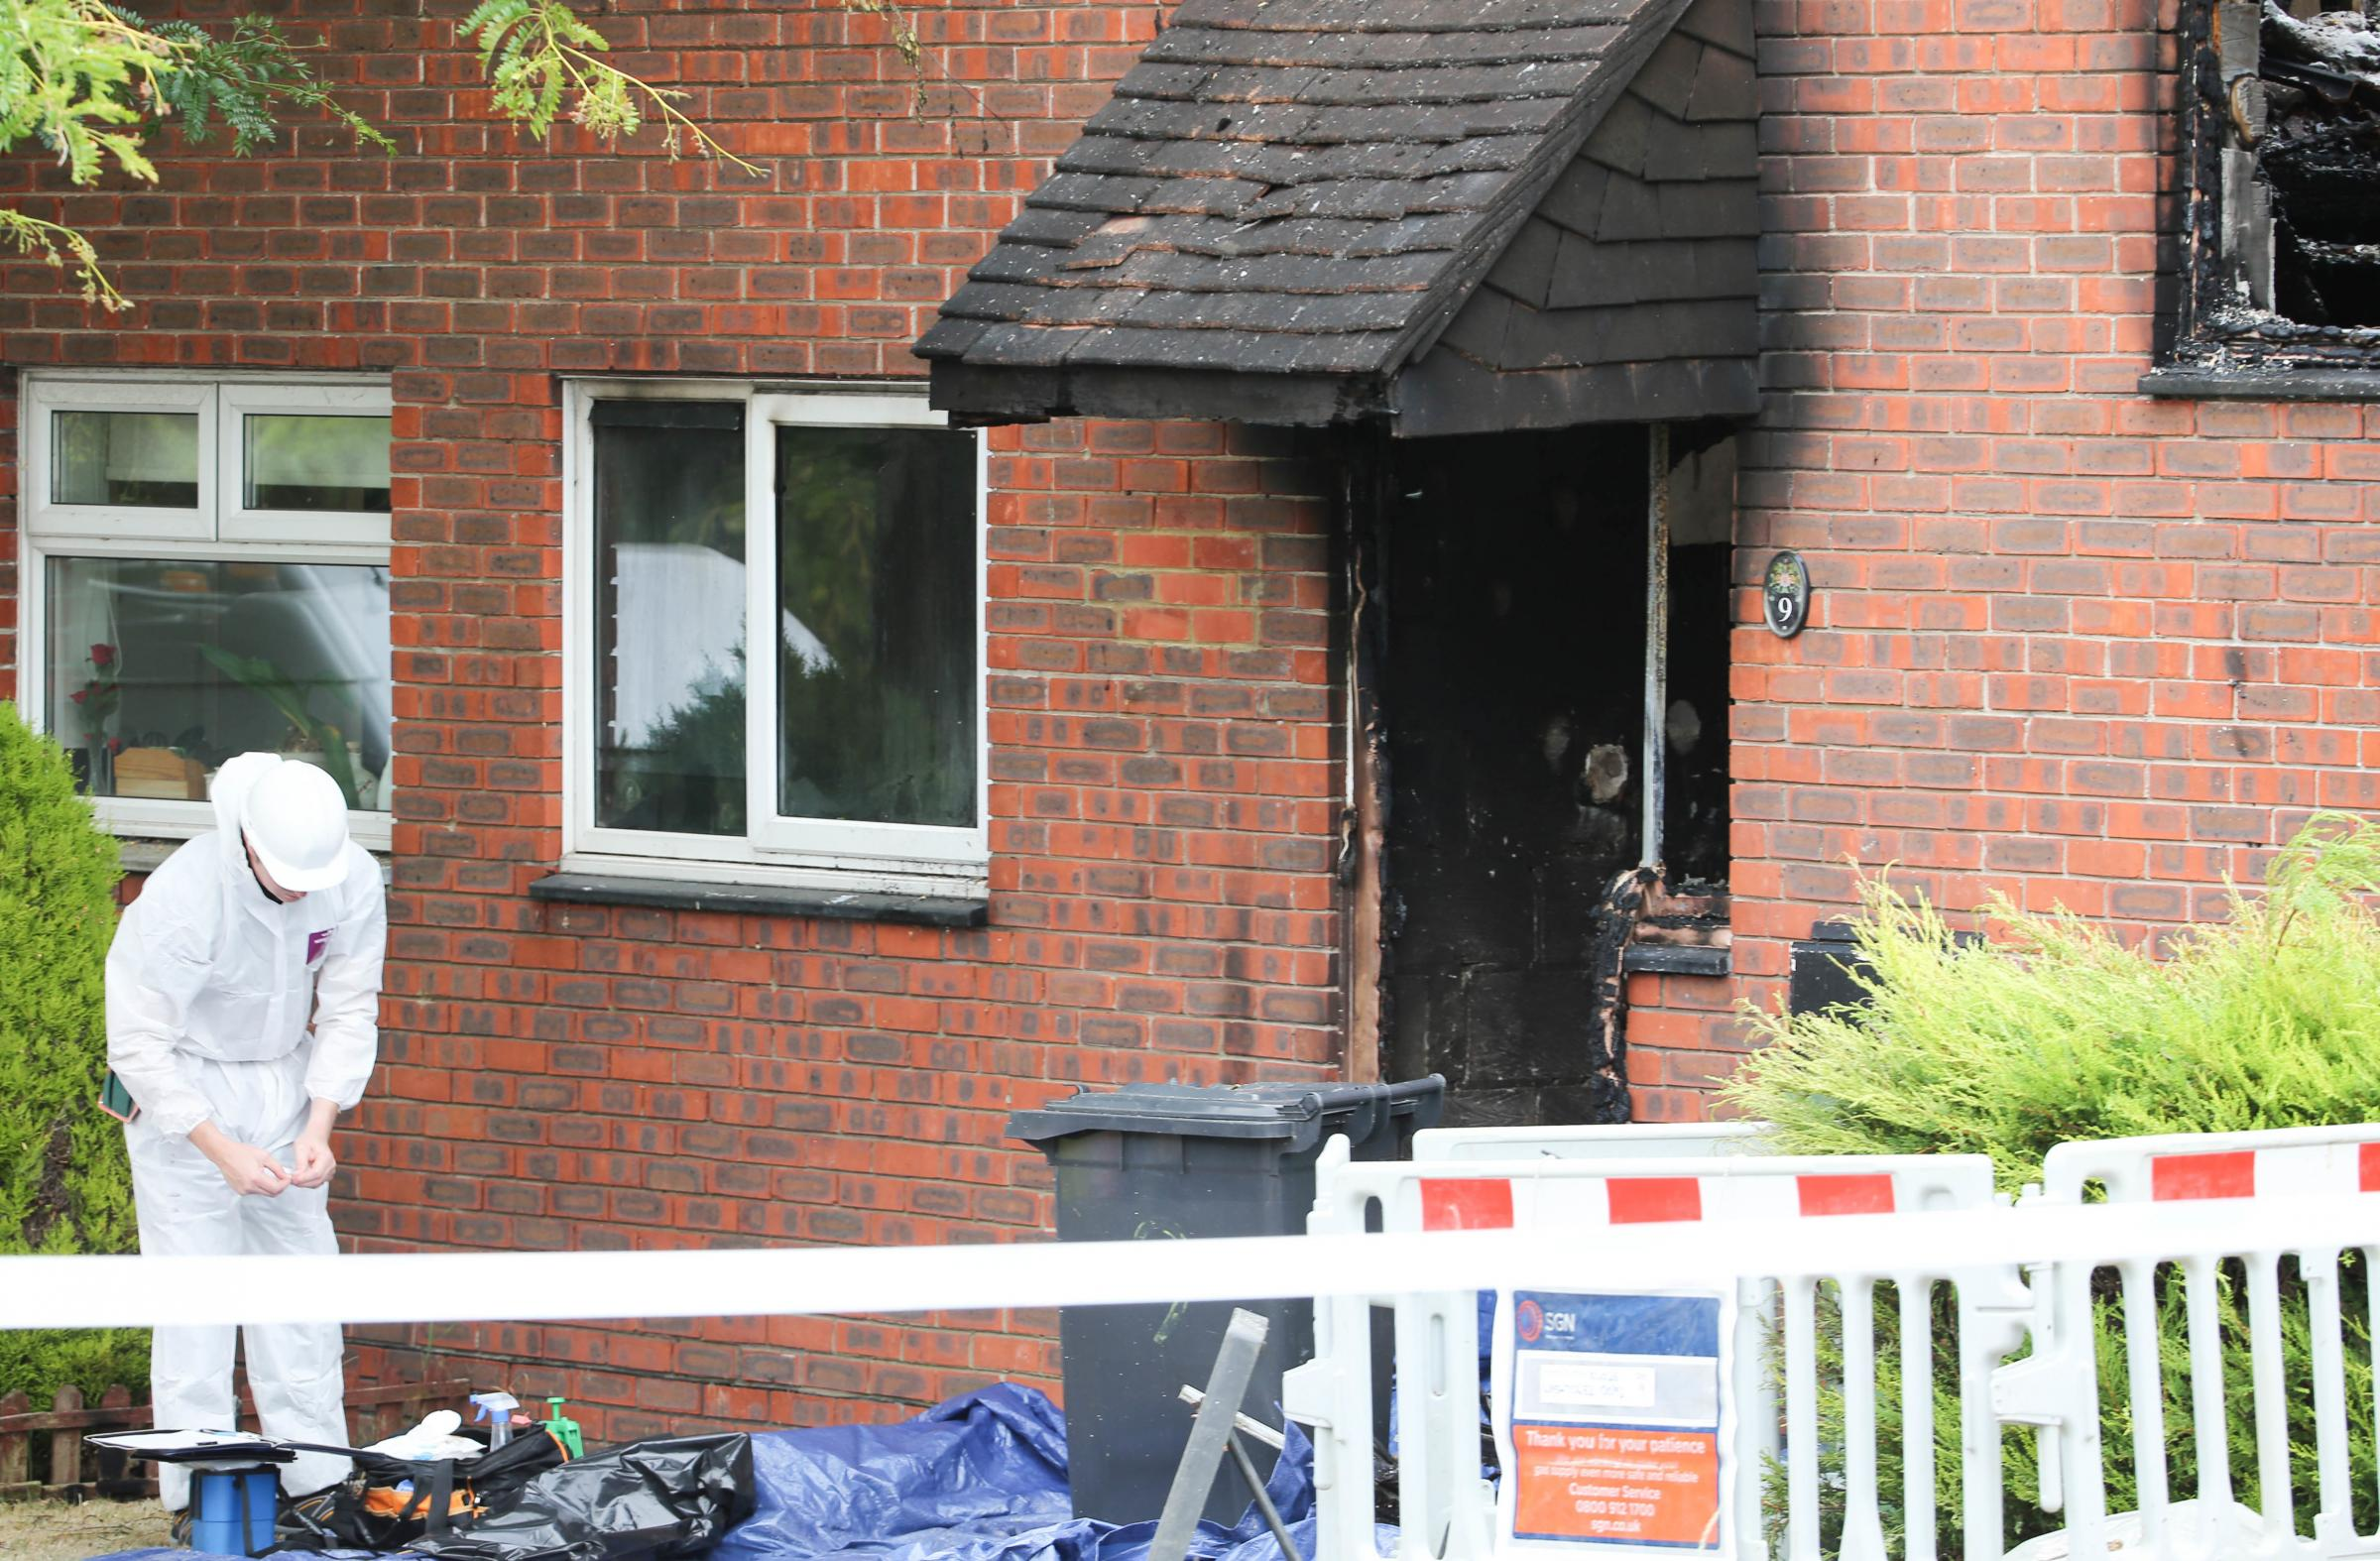 Andrew Milne and Jacob Barnard have been found guilty of the murders of Gina Ingles and Milo Ingles-Bailey and the attempted murder of Toby Jarrett at a house fire at Croxden Way, Eastbourne in July 2018